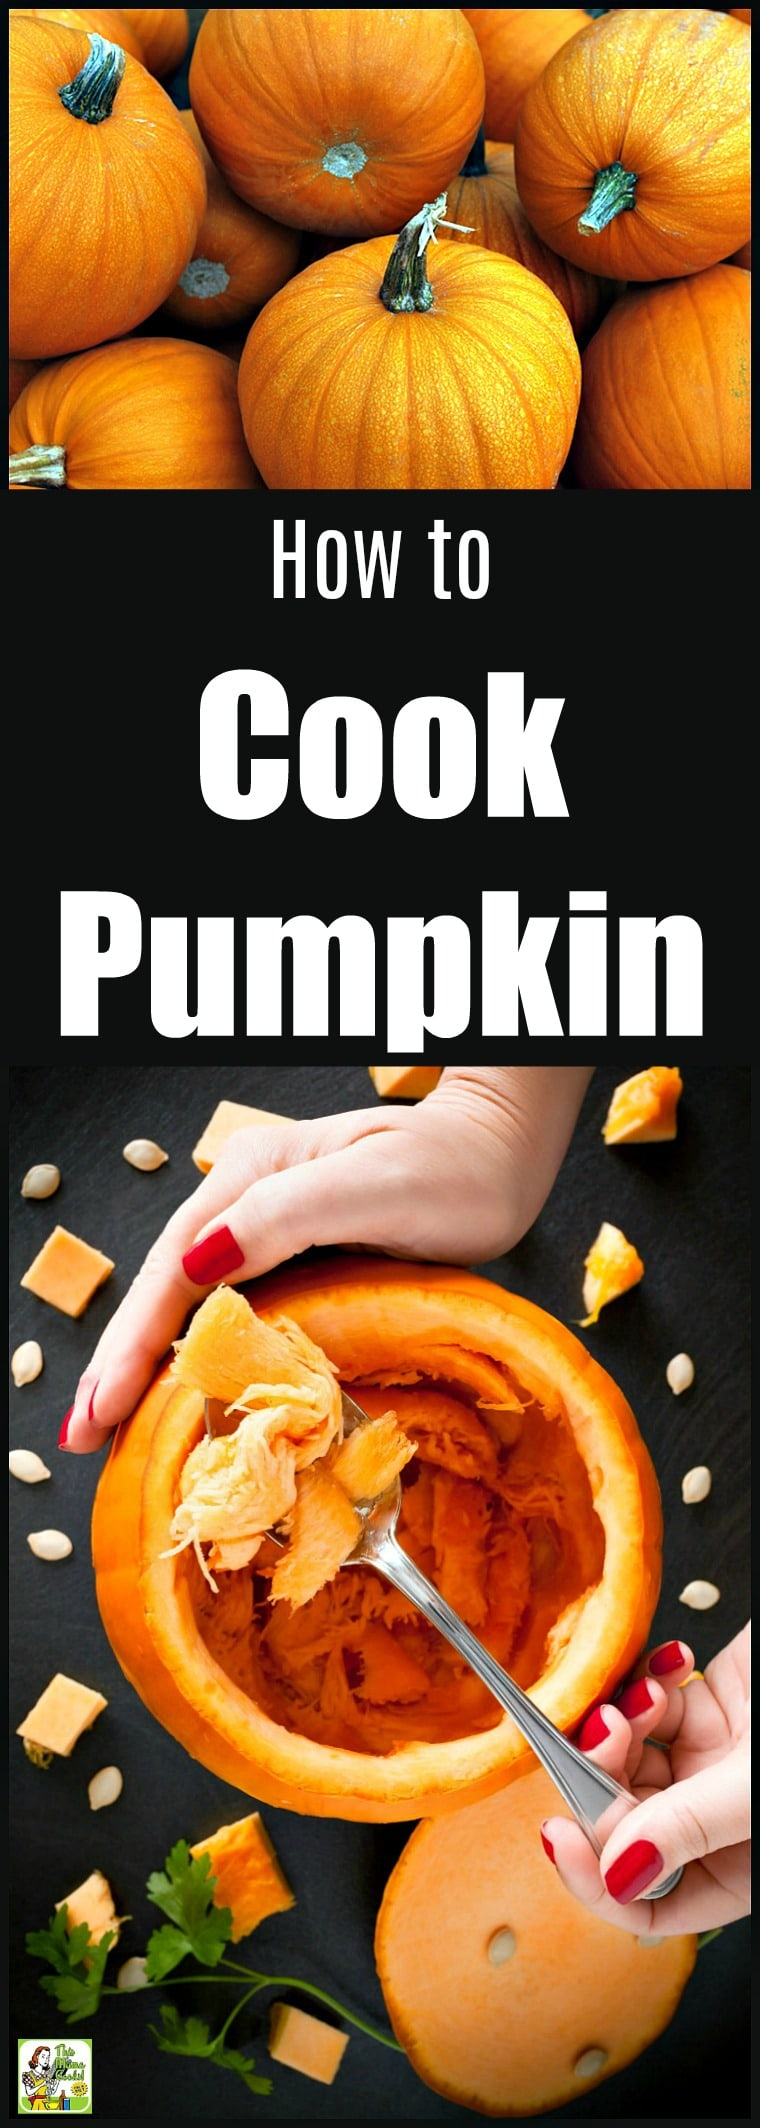 Learn how to cook pumpkins to make pumpkin puree for cooking and baking. Includes several easy methods for cooking pumpkin: microwaving, oven roasting, steaming on the stovetop, and slow cooking in a crock-pot. #pumpkinrecipe #pumpkin #pumpkinseeds #easy #easyrecipe #easyrecipes #halloween #thanksgiving #baking #slowcooker #slowcookerrecipes #crockpot #crockpotrecipes